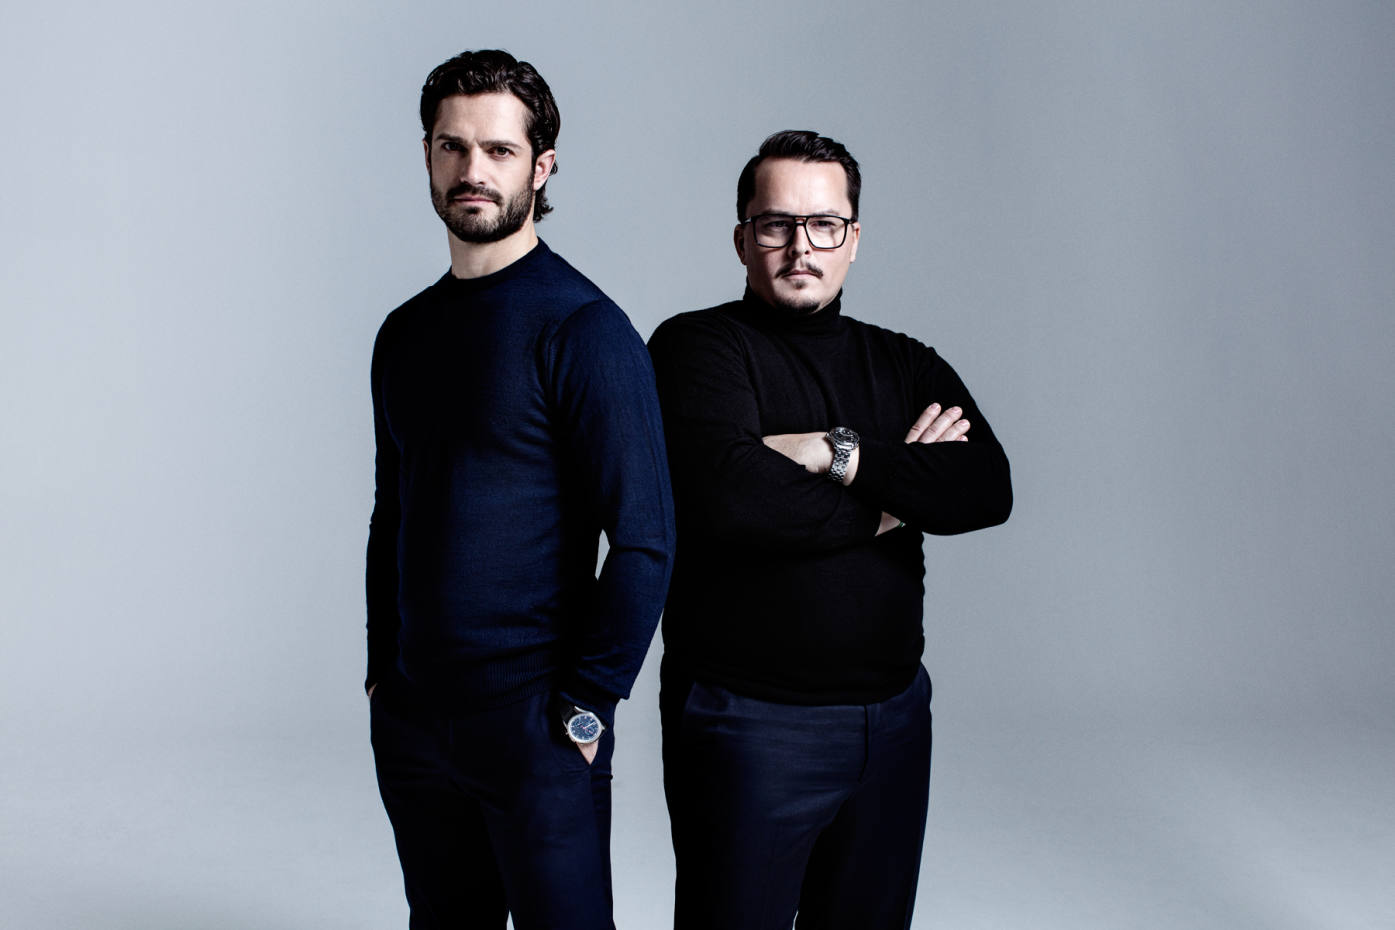 Designers Prince Carl Philip of Sweden, left, and Oscar Kylberg have worked together as Bernadotte & Kylberg since 2012